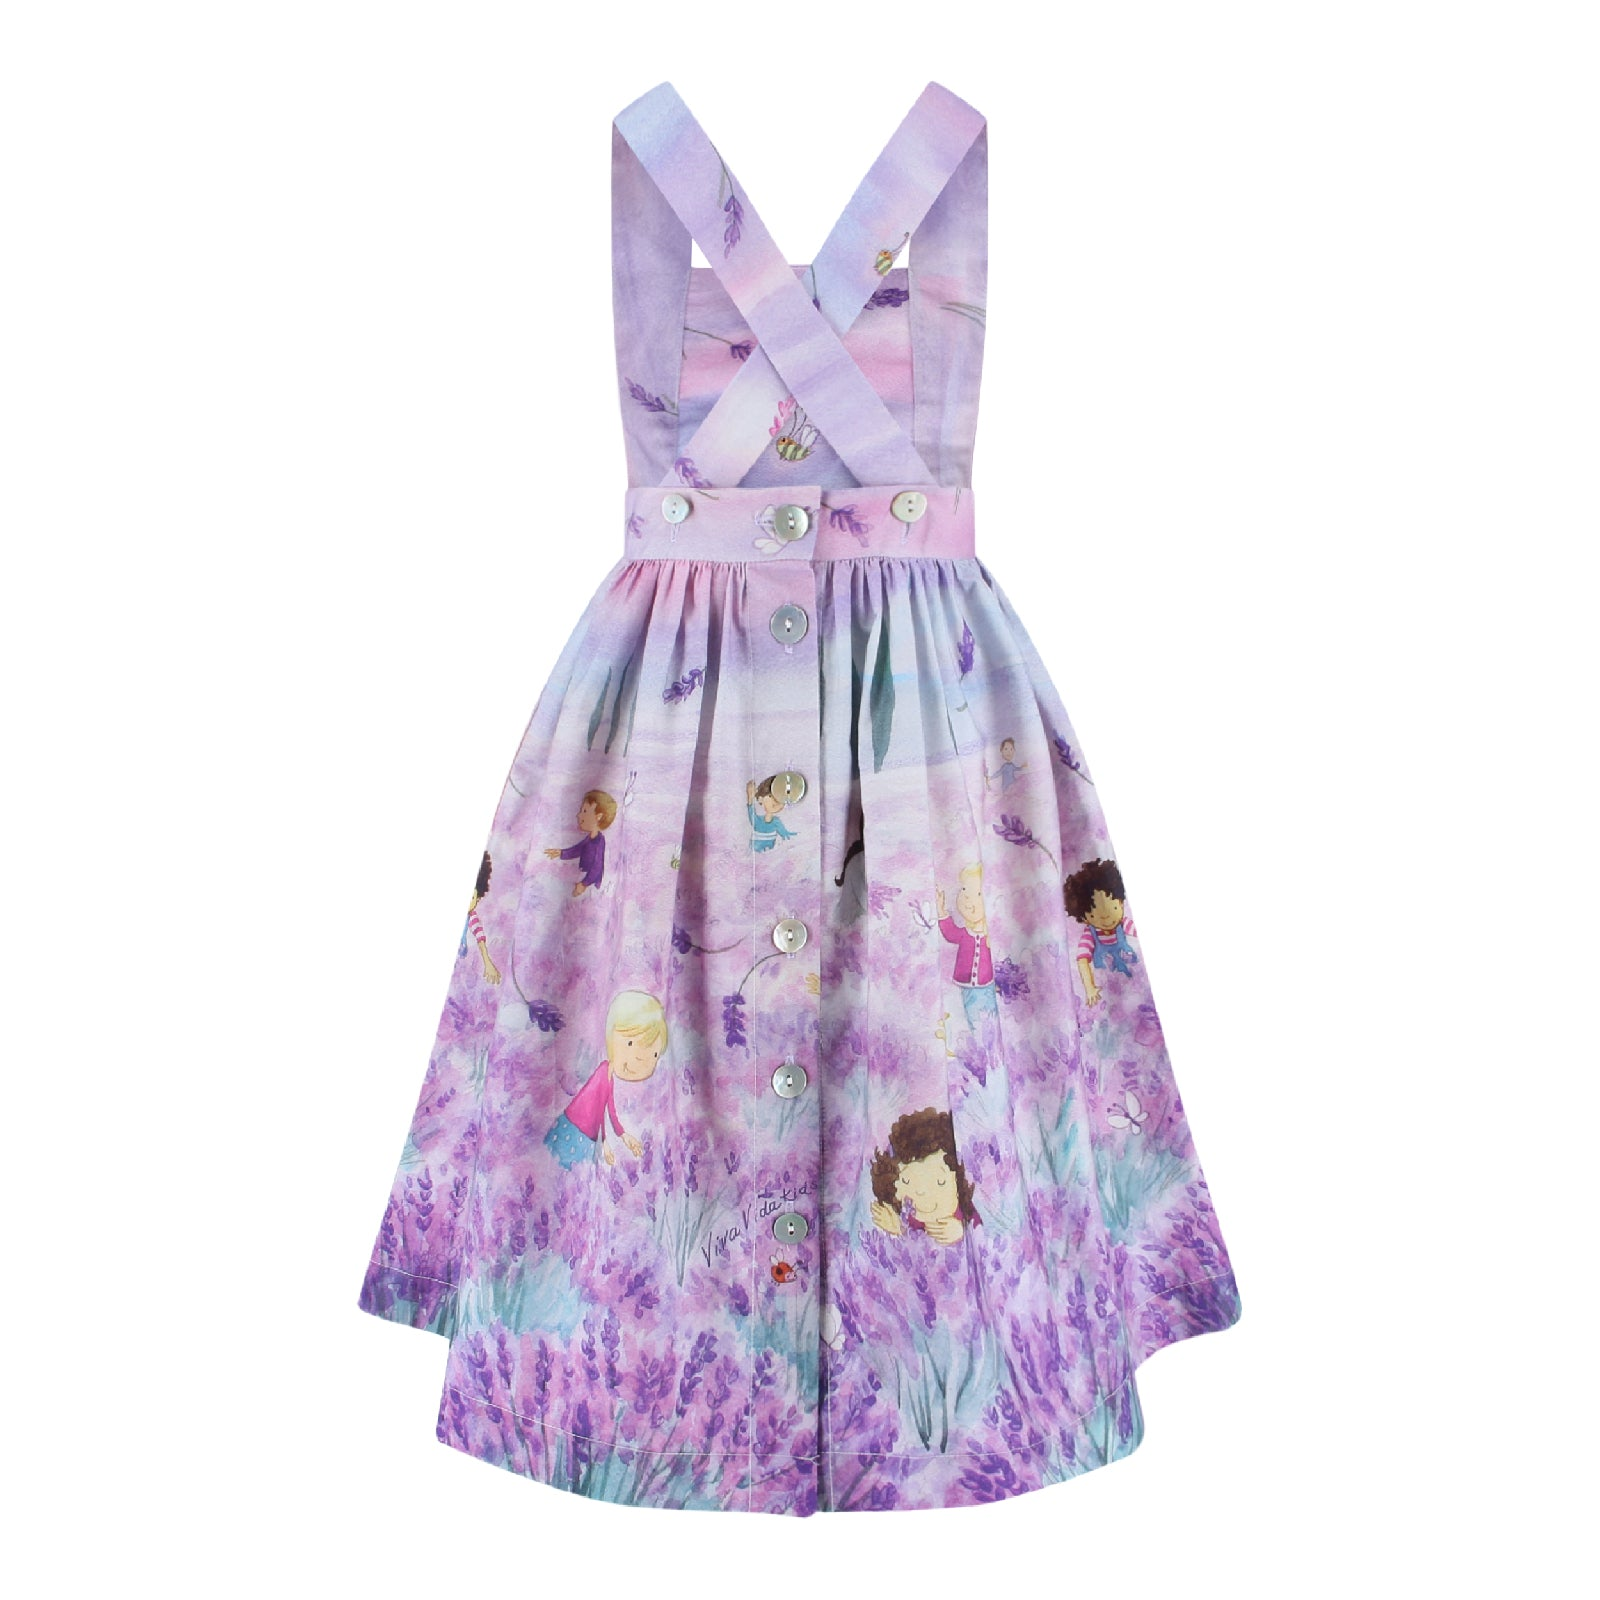 Sophia Dress - Lavender Fields